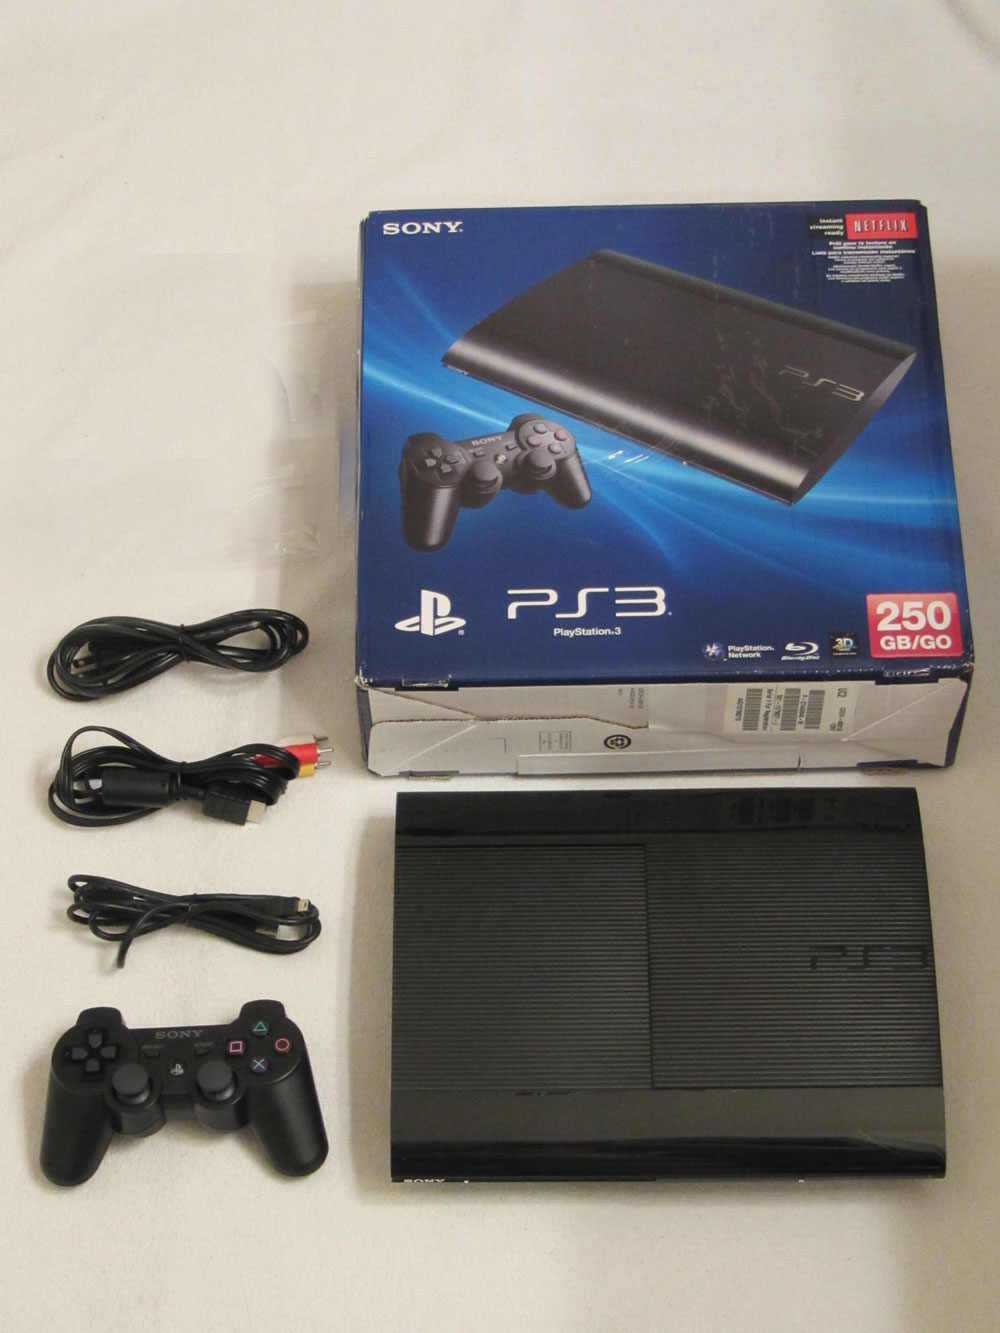 Playstation 3 Super Slim 250gb With Uncharted 3 game cd ..CHEAP** - Technology Market - Nigeria